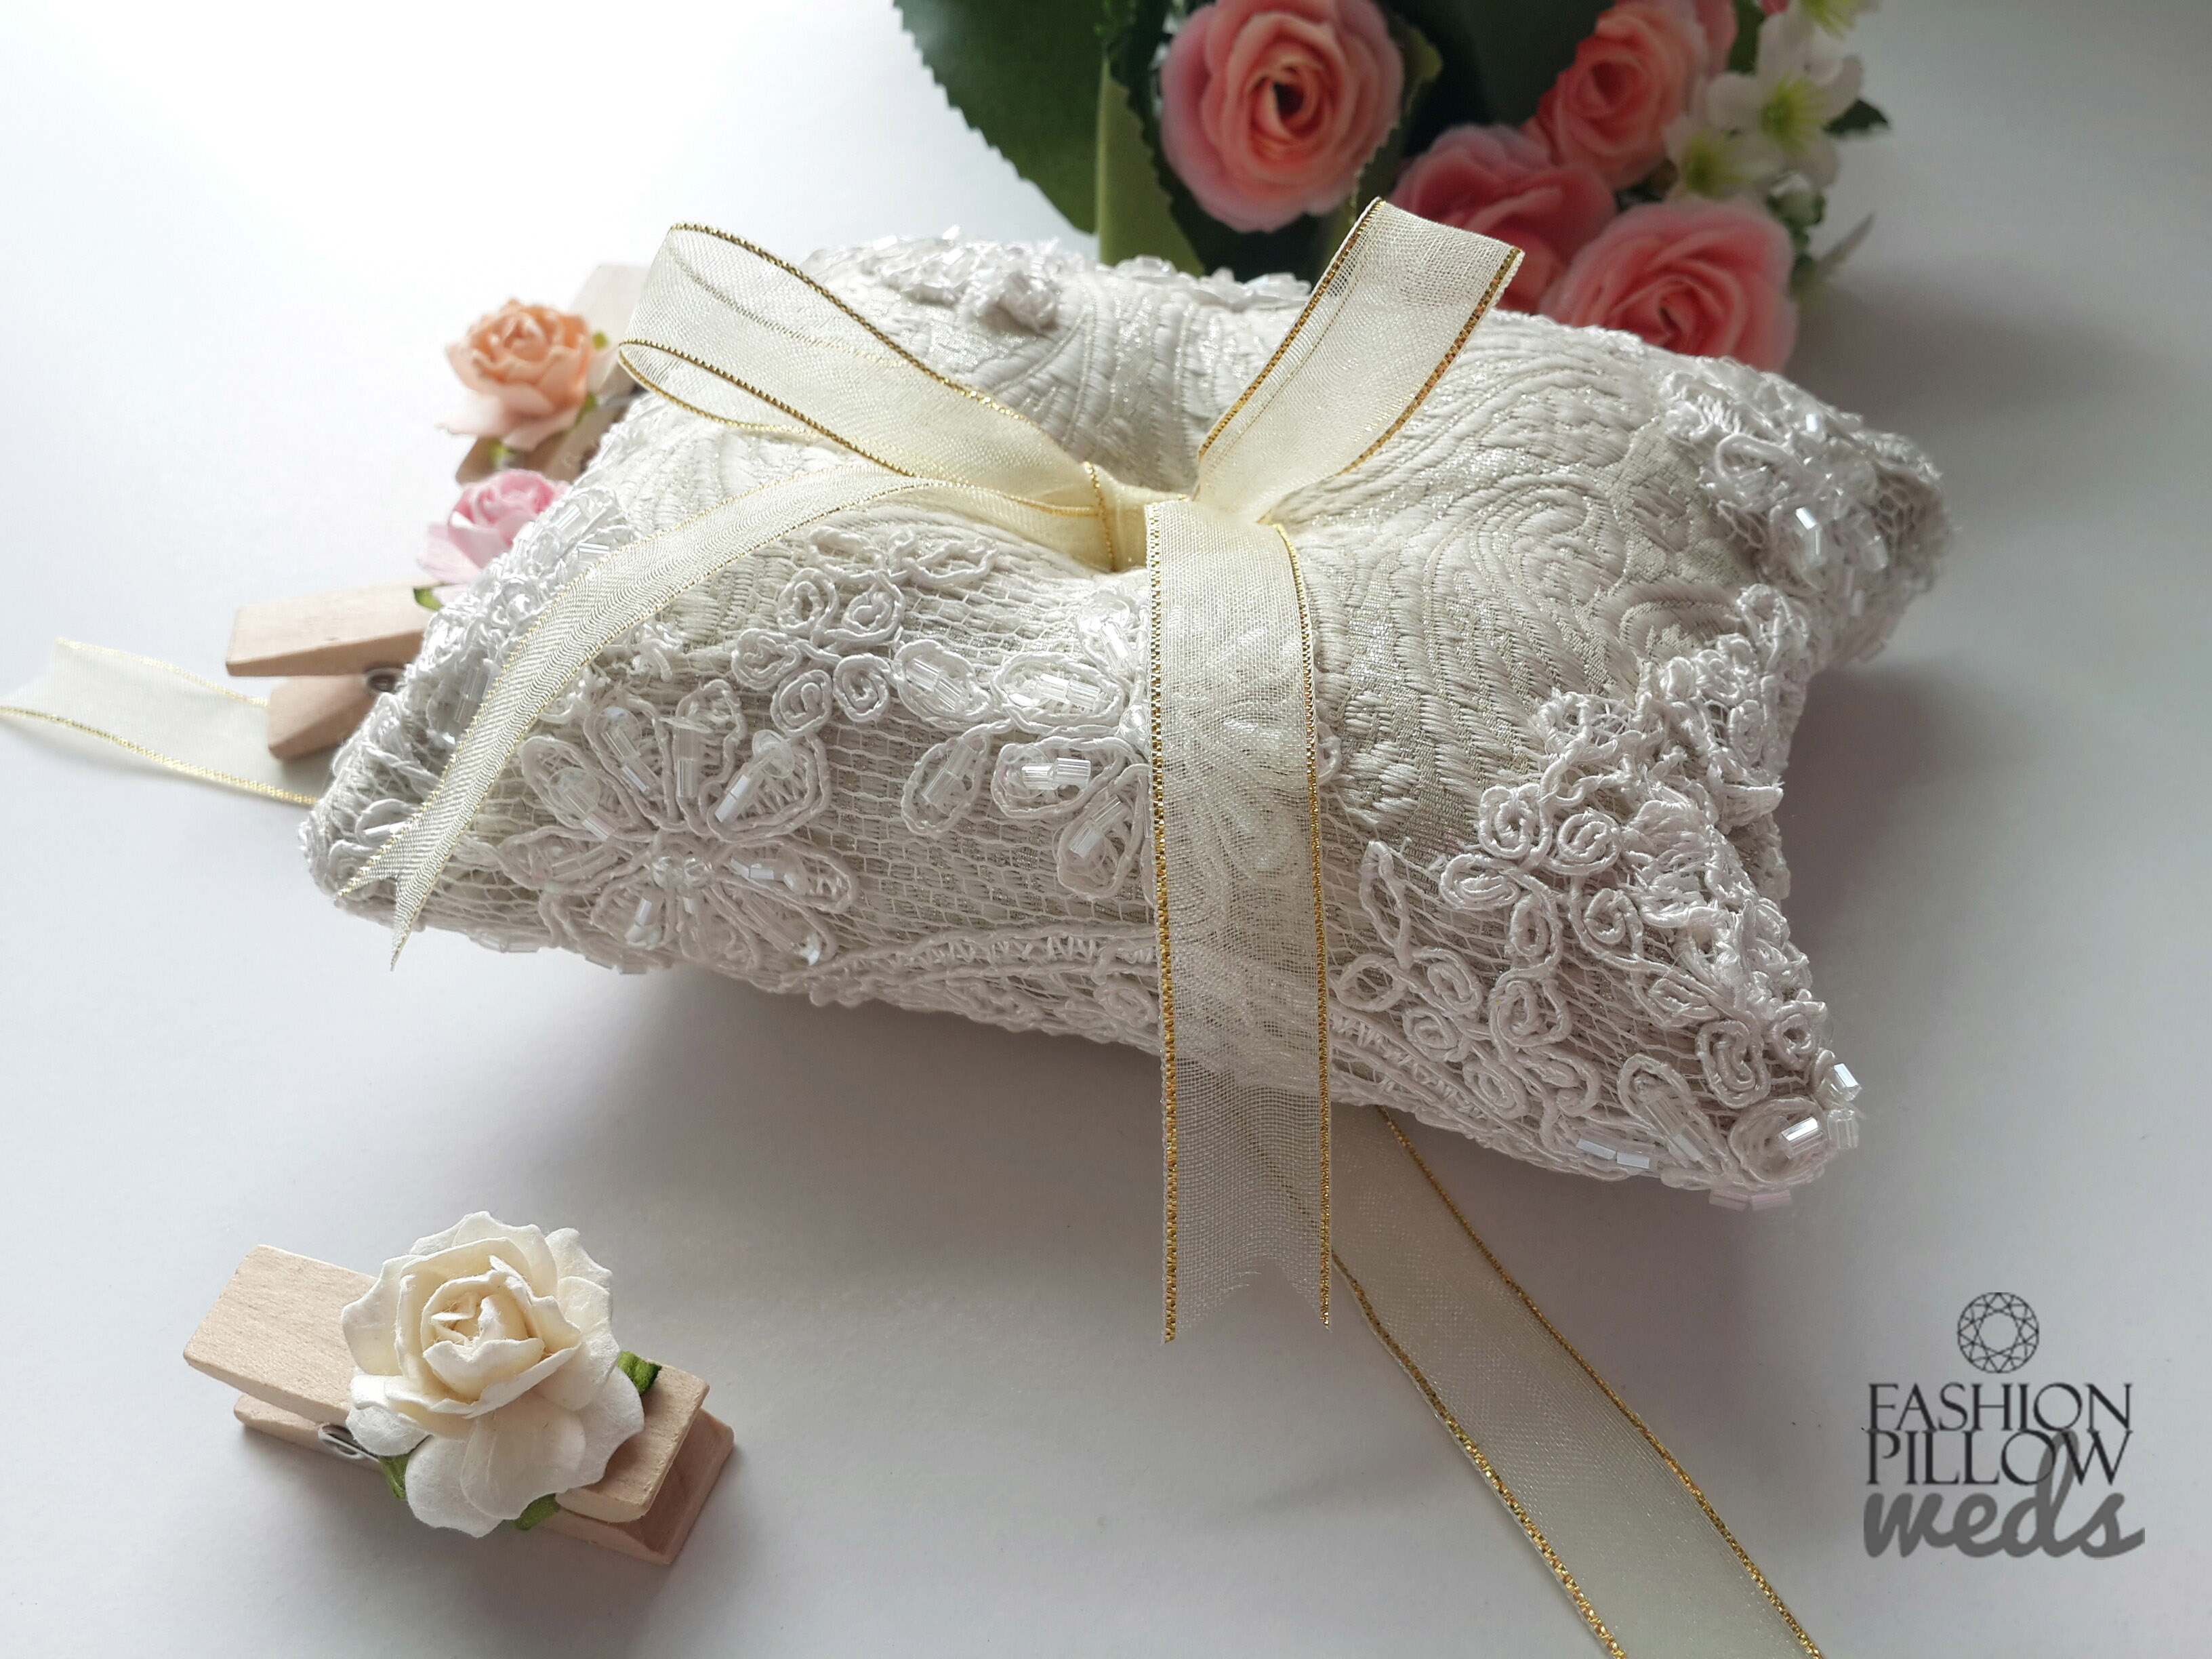 roses holder cushions pillow index ios wedding engagement ring cushion